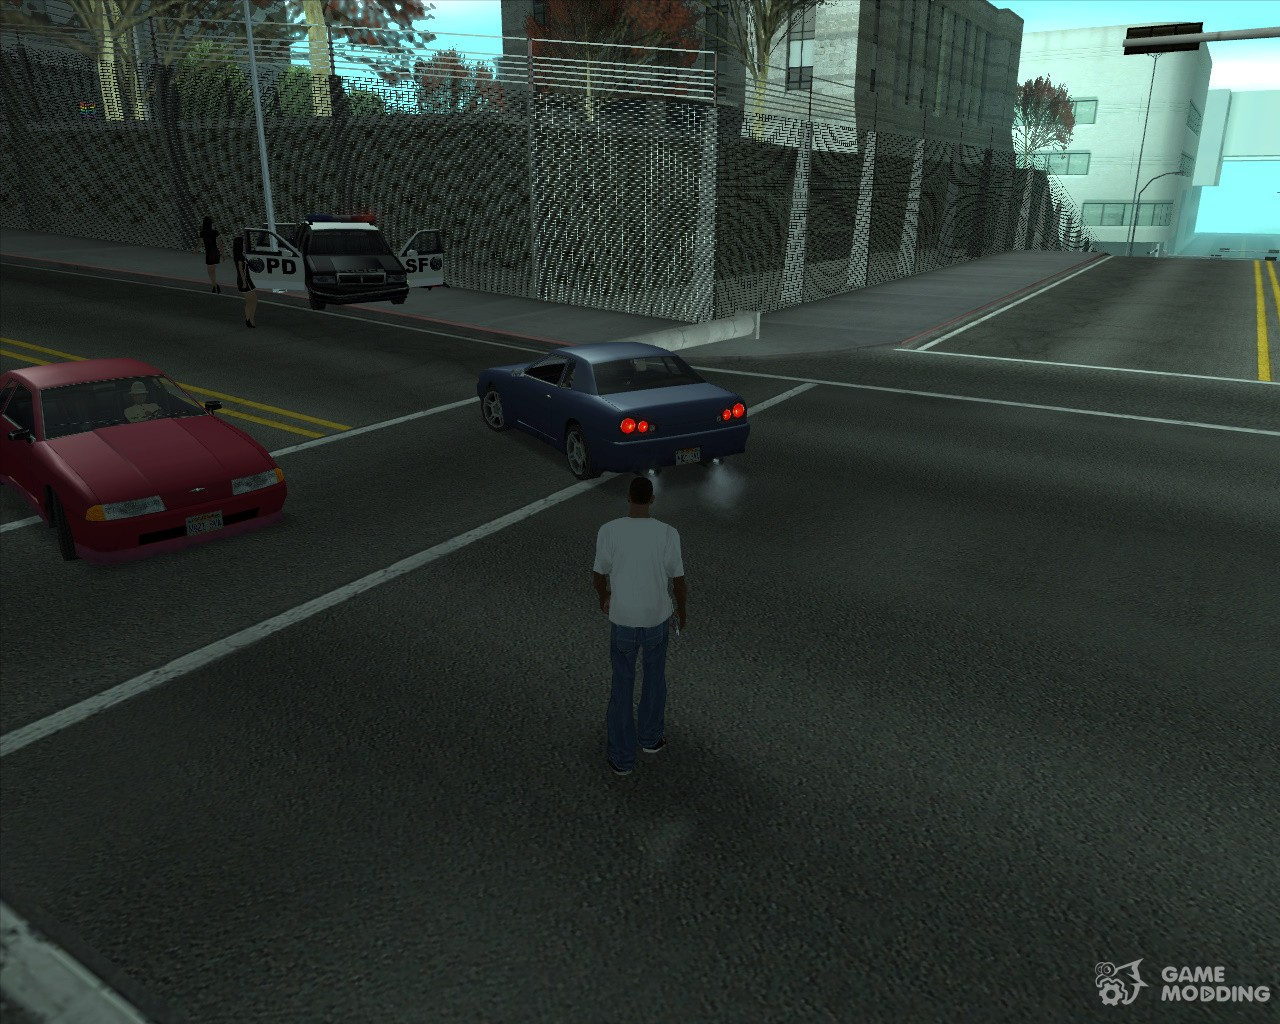 gta san andreas how to fix resolution